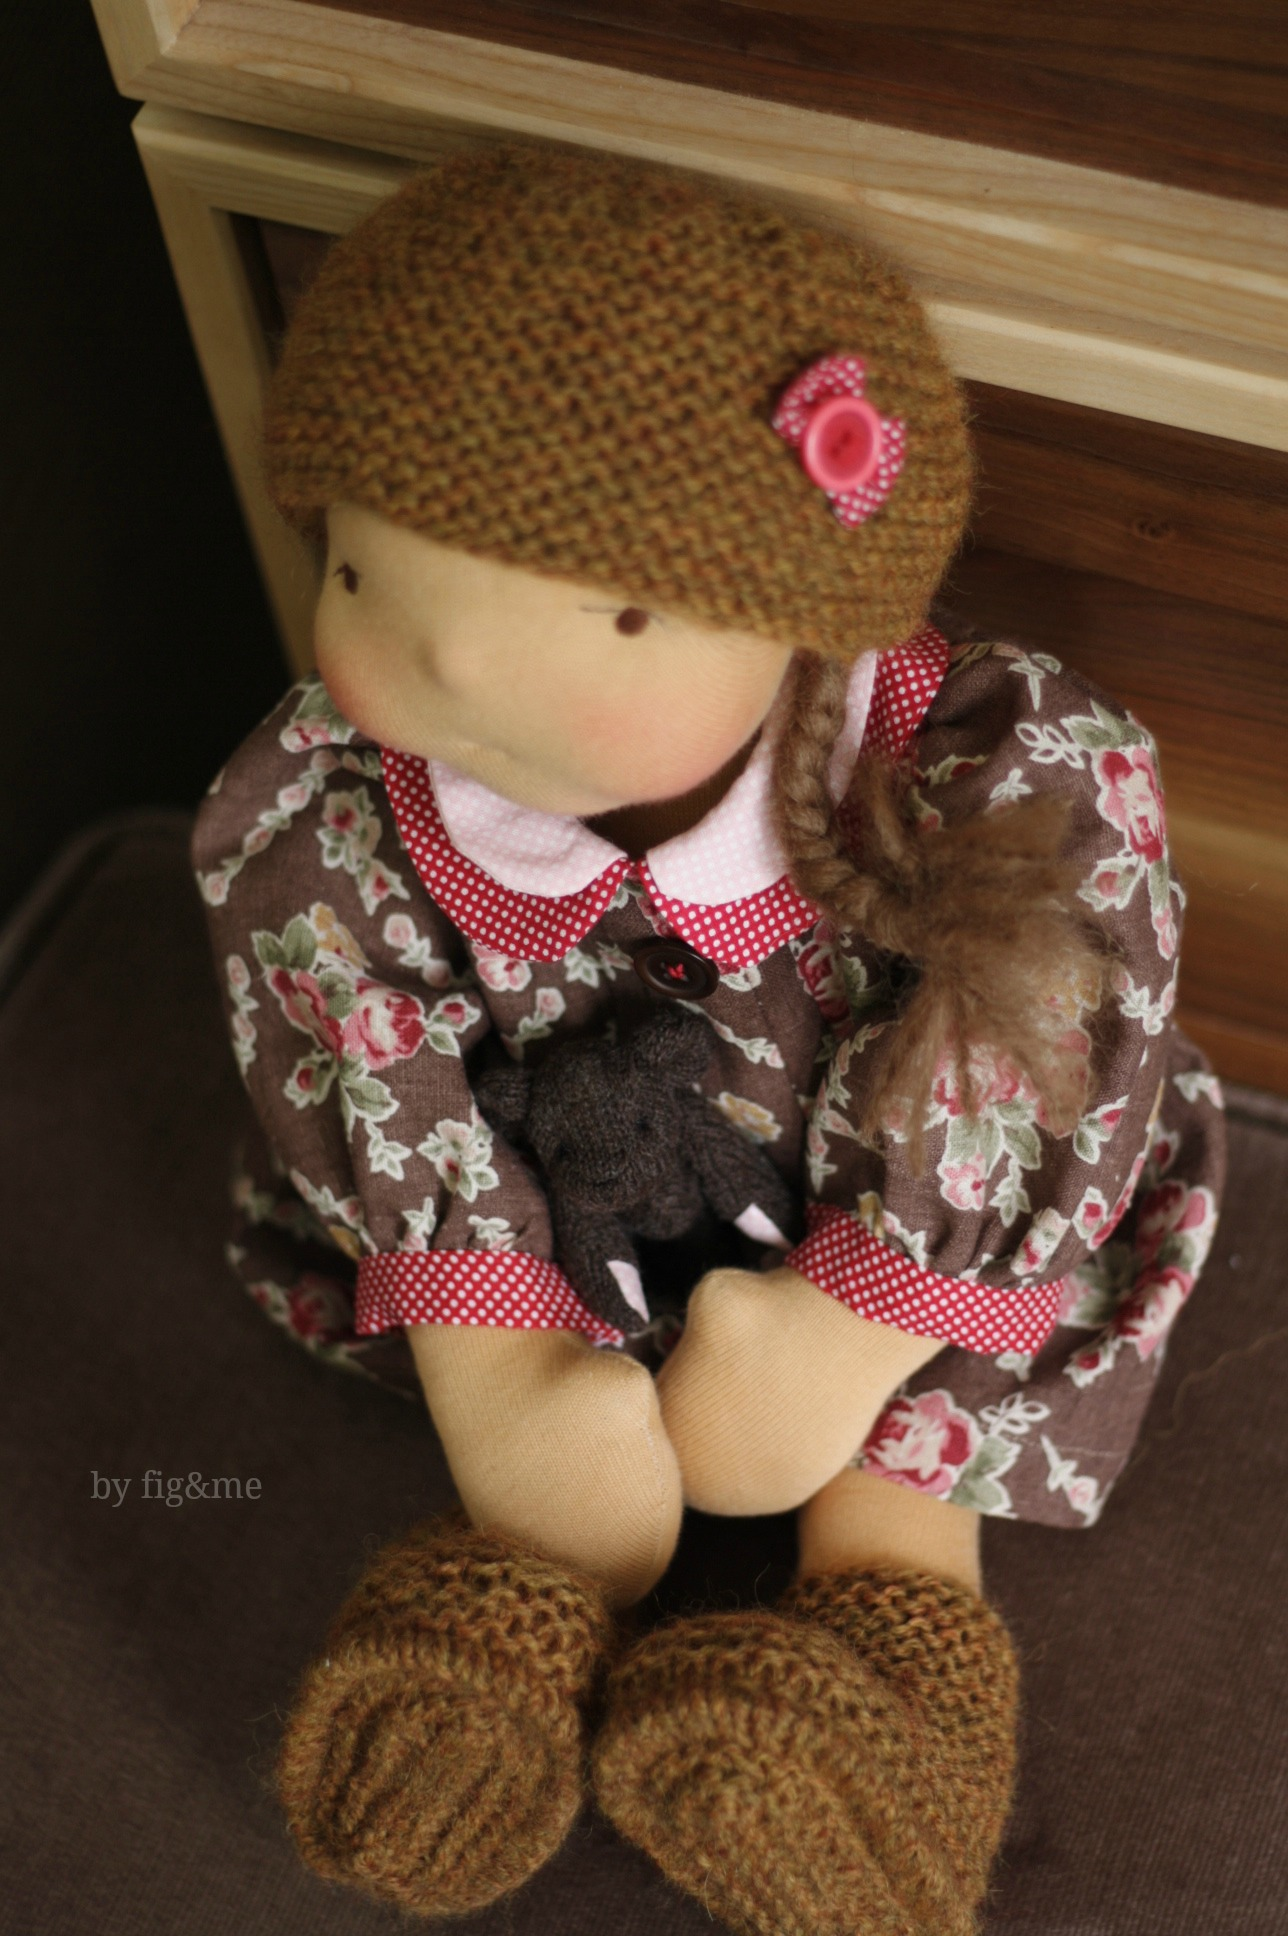 Celia and her new wool bear, by Fig&me.